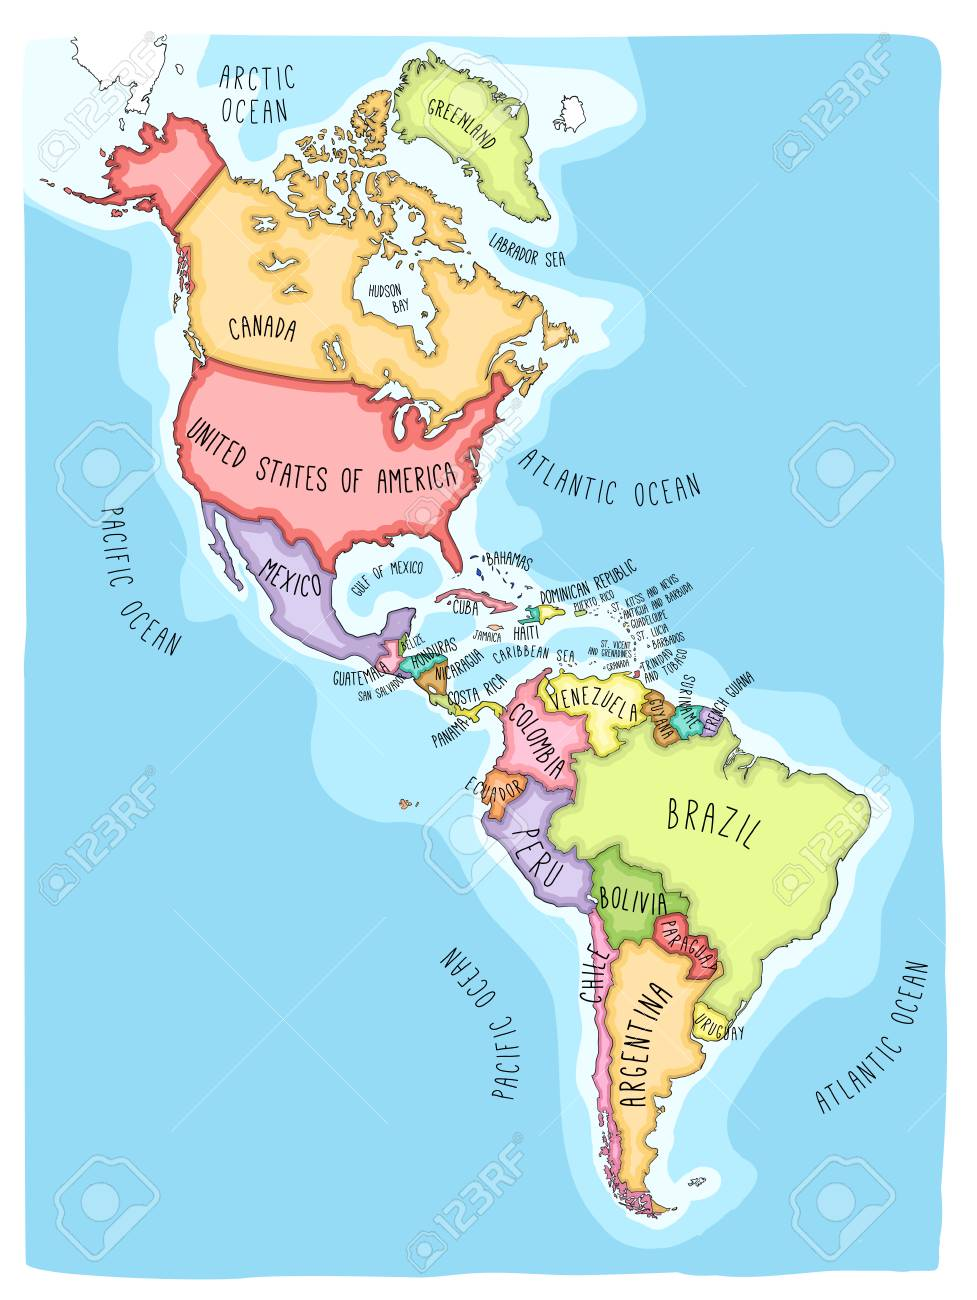 Hand drawn vector map of the Americas. Colorful cartoon style cartography of north and South America including United States, Canada, Mexico, Brazil, Argentina, Cuba, Colombia, Venezuela... - 92661569